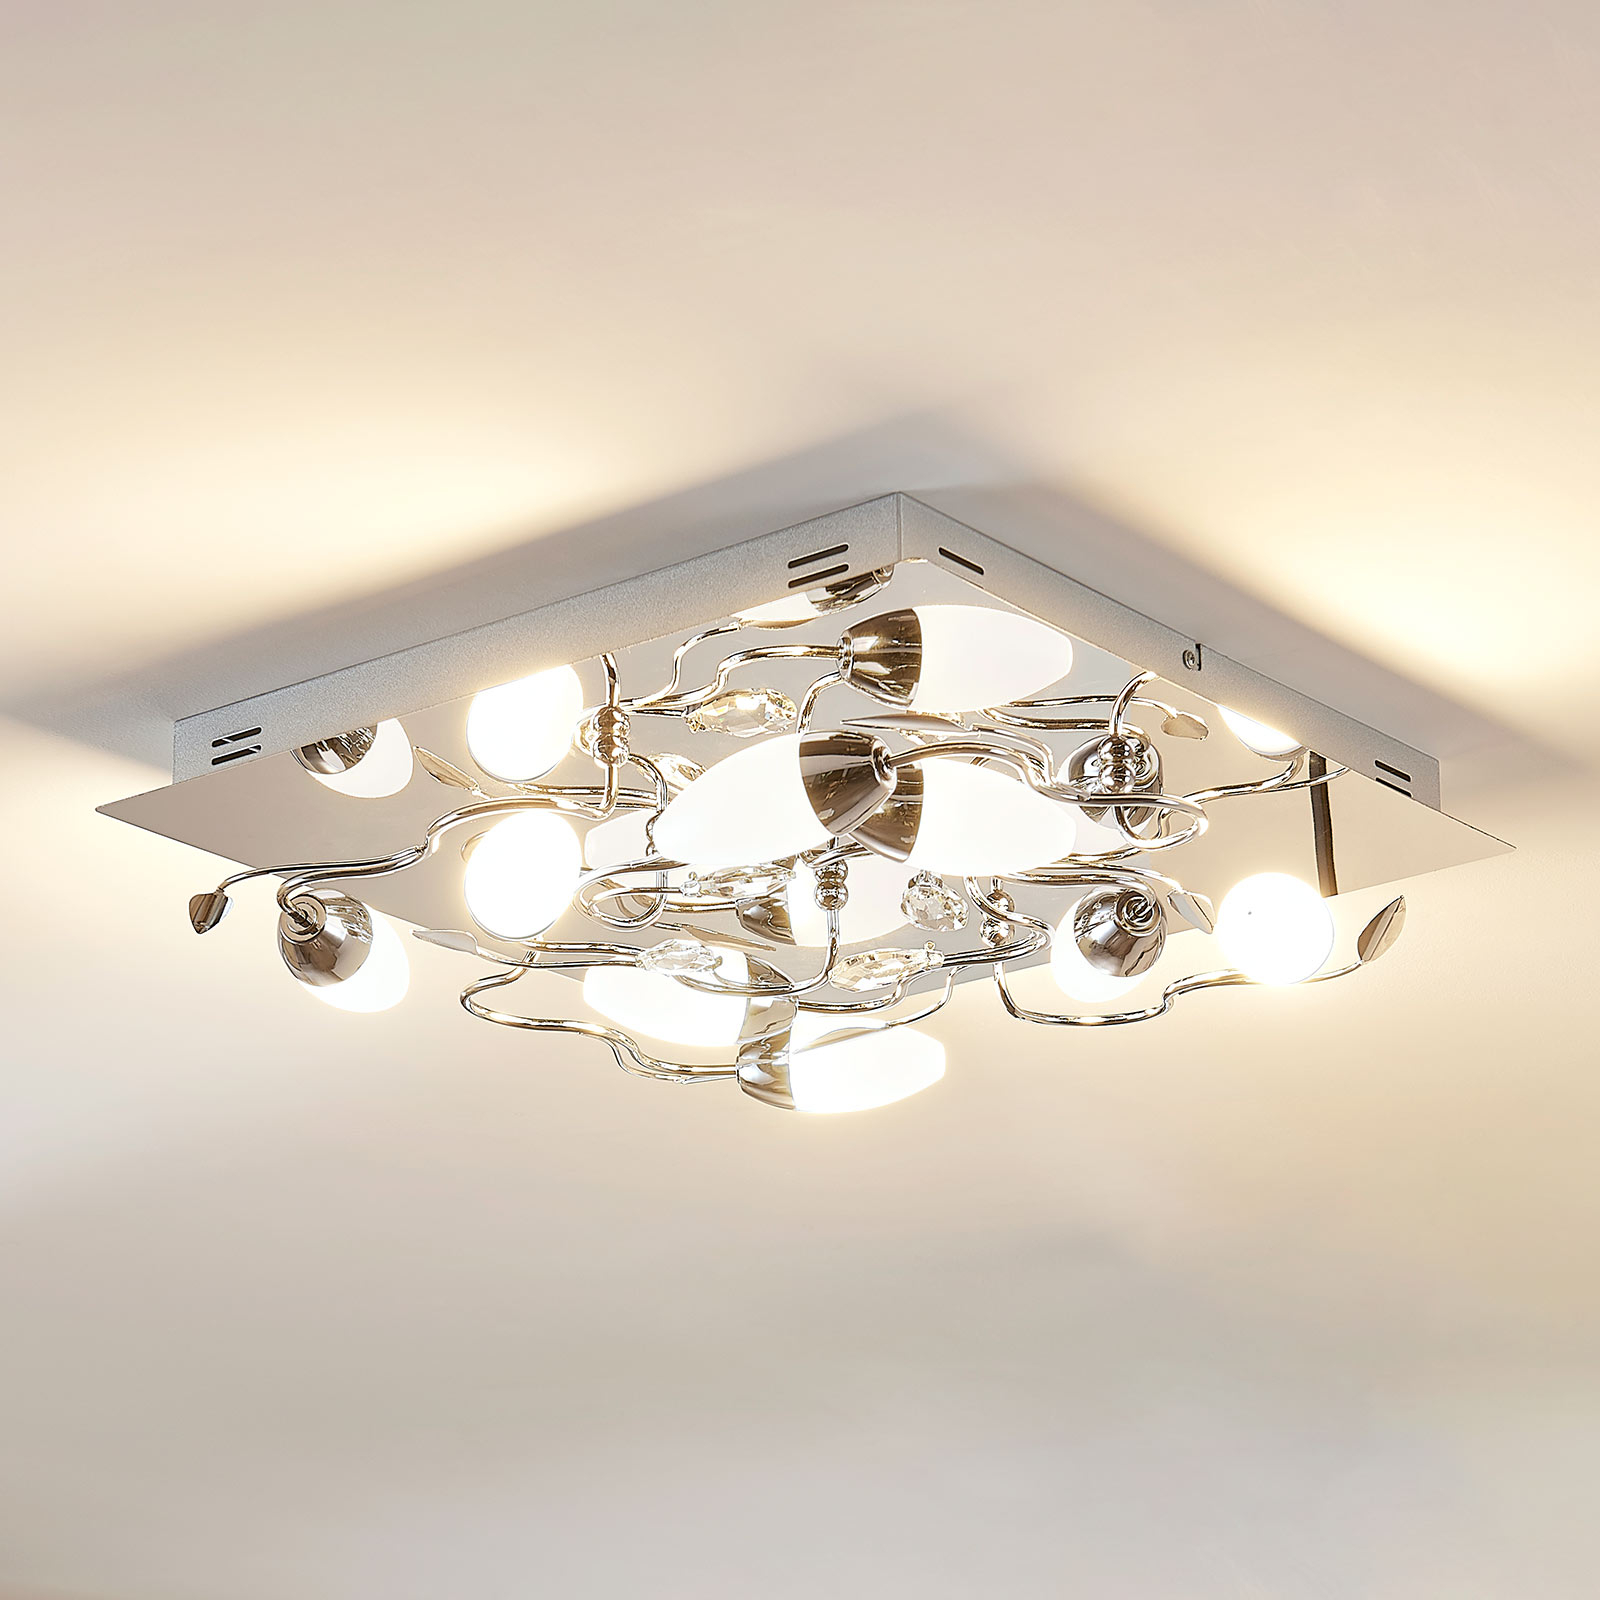 Plafonnier LED dimmable Mischa, 8 lampes, carré